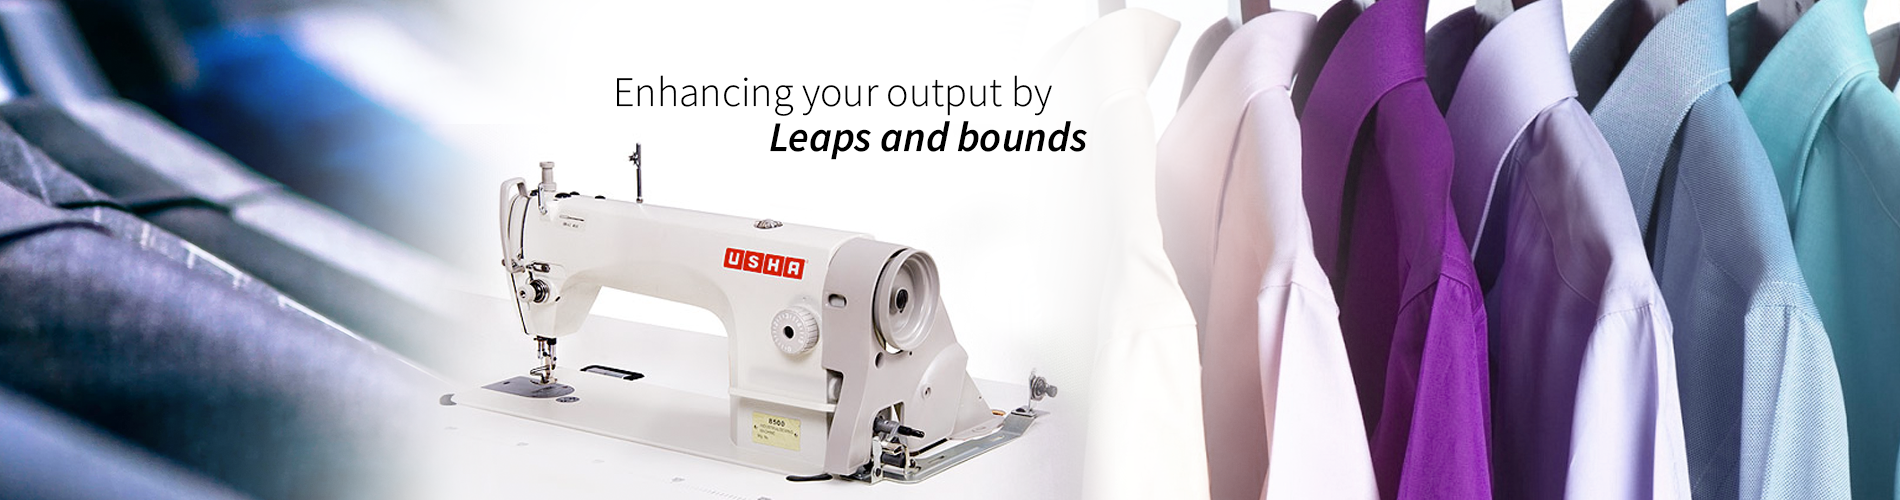 Usha Industrial Sewing Machines